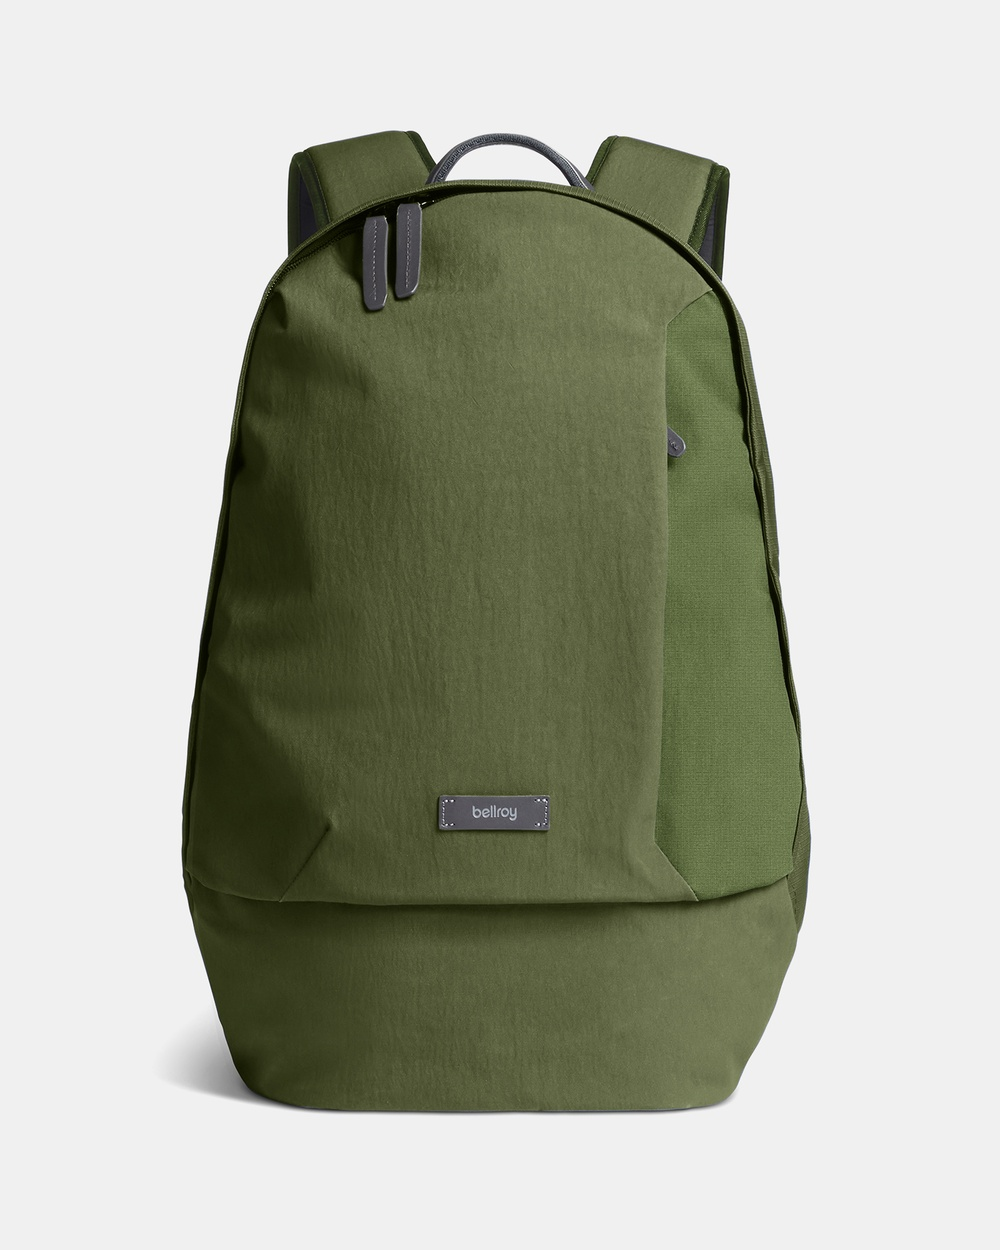 Bellroy Classic Backpack Second Edition Backpacks green